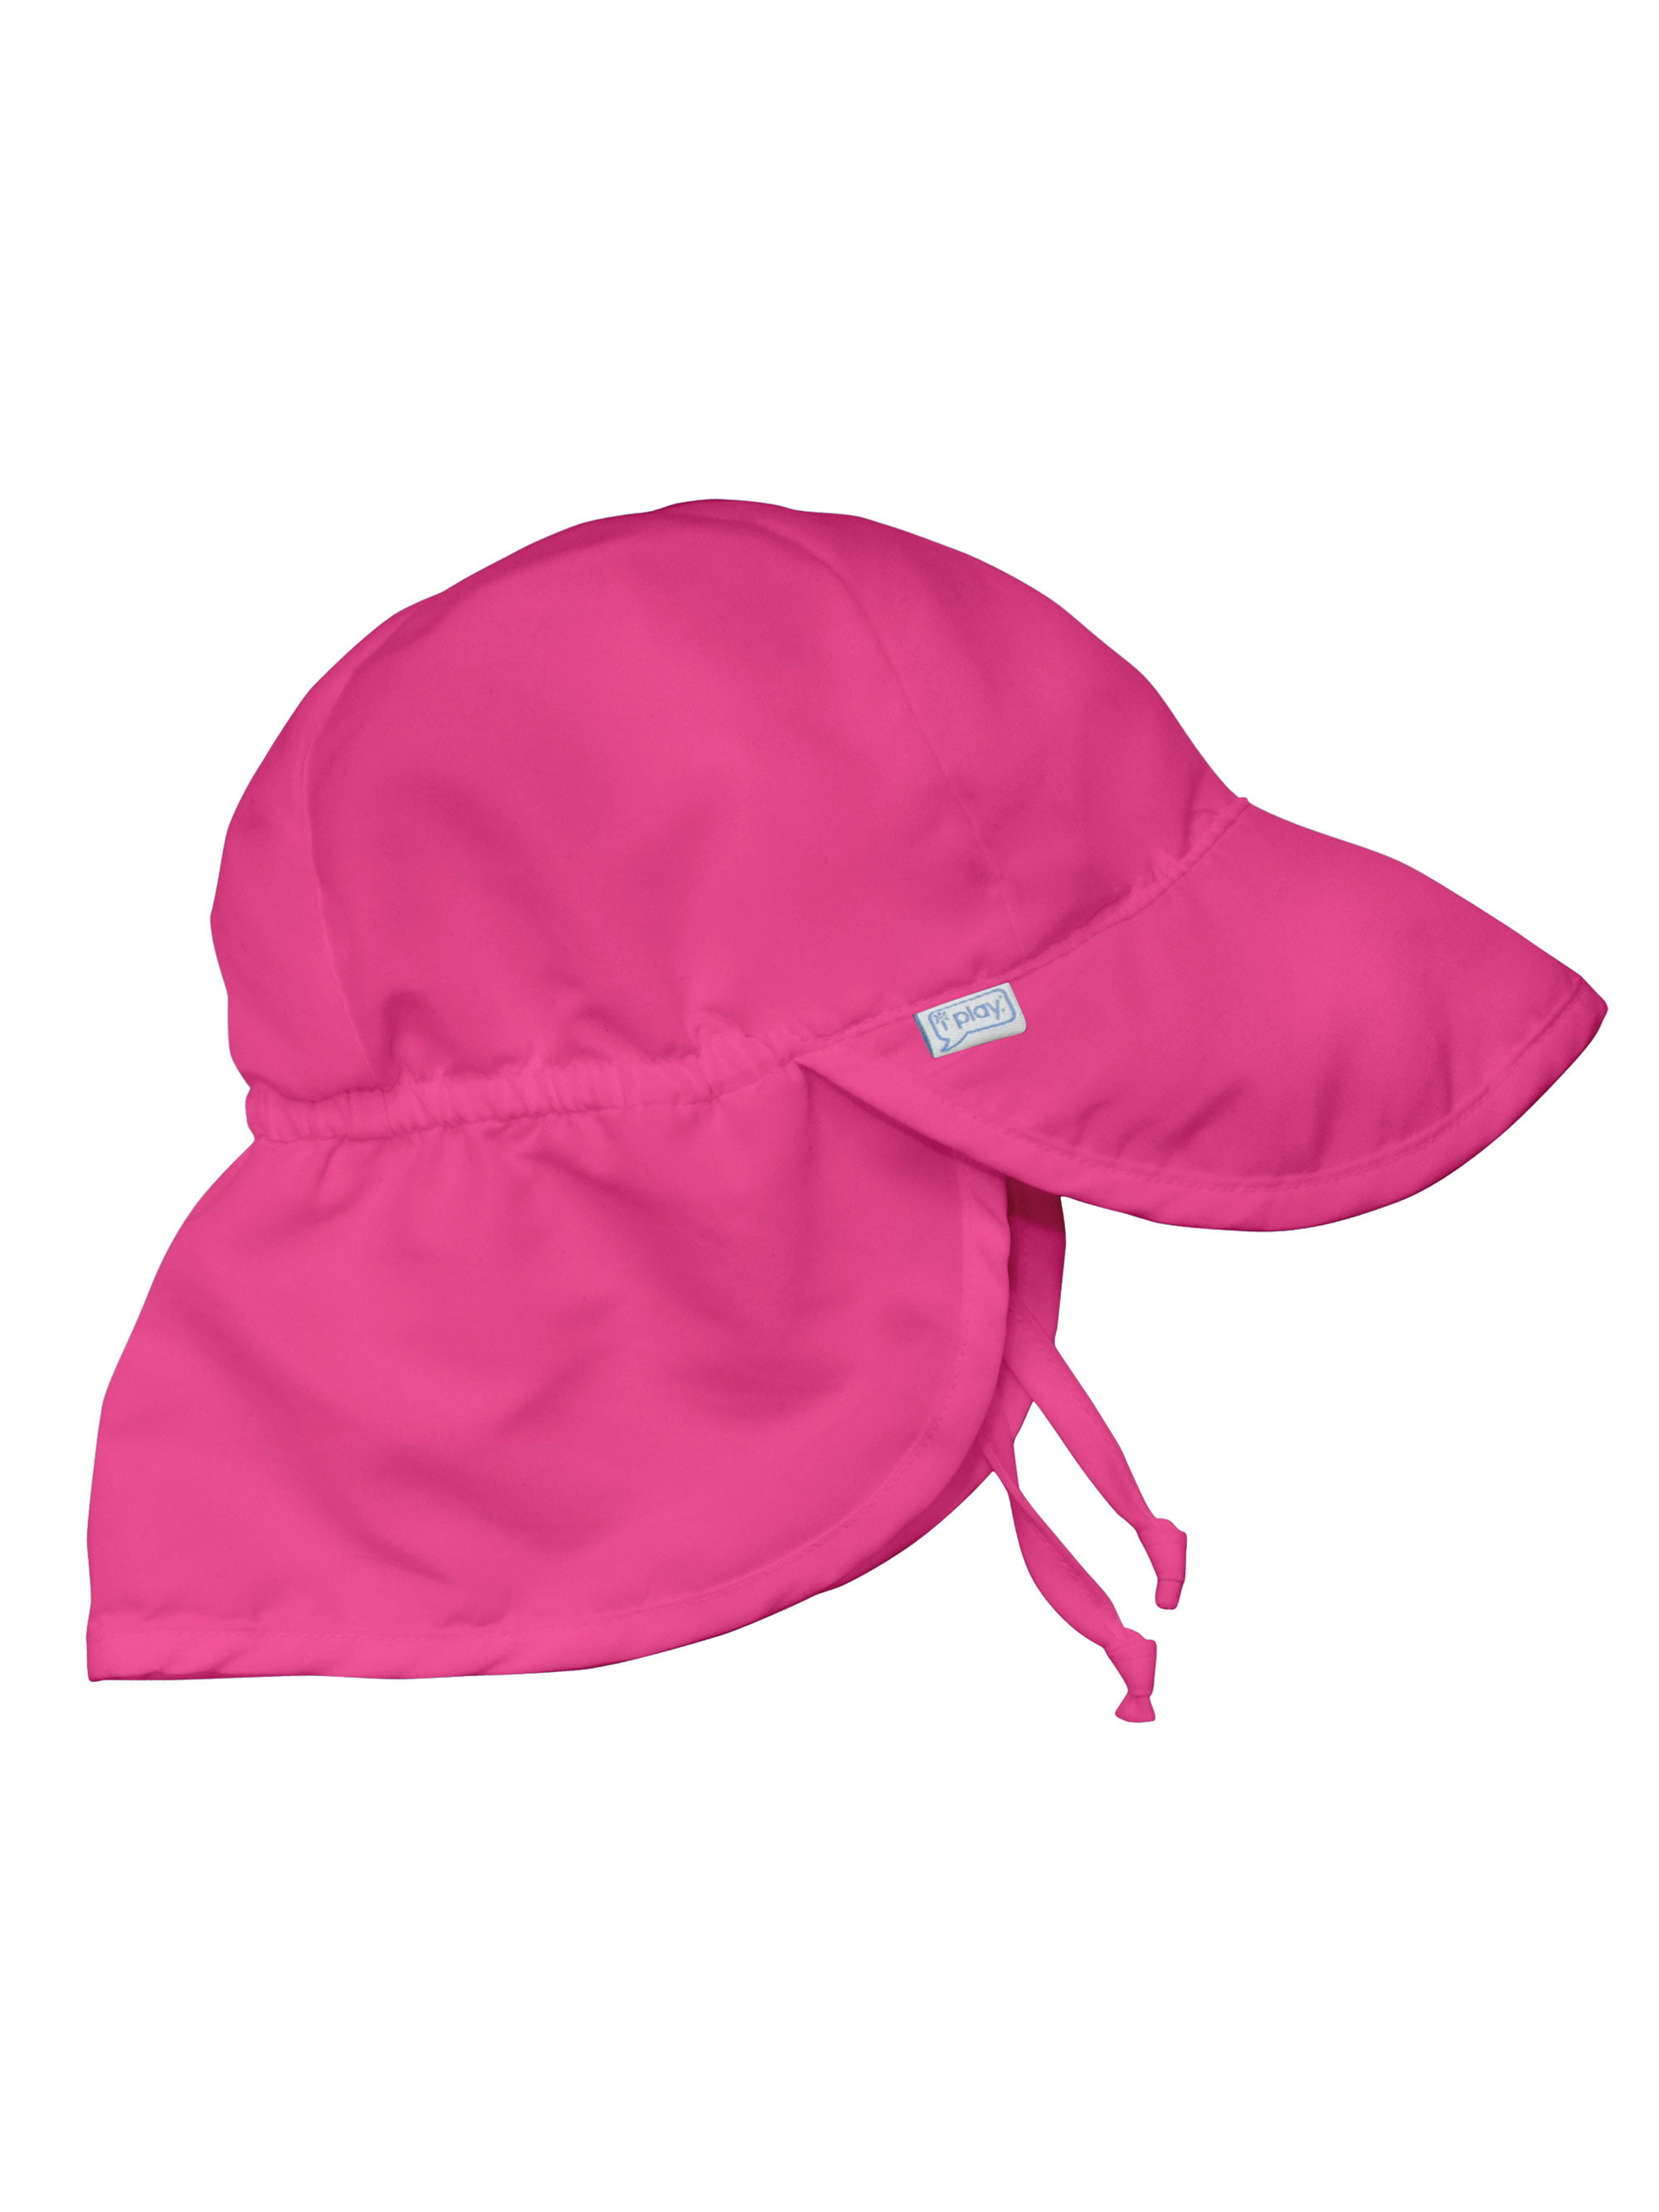 Flap Sun Hat for Baby Girls Sun Protection Large Billed Hat Solid Hot Pink  Newborn 0-6 Mths Baby Girl Hat Is Adjustable To Fit Outdoor Hat With Chin  Strap ... 4f1620cfdbf